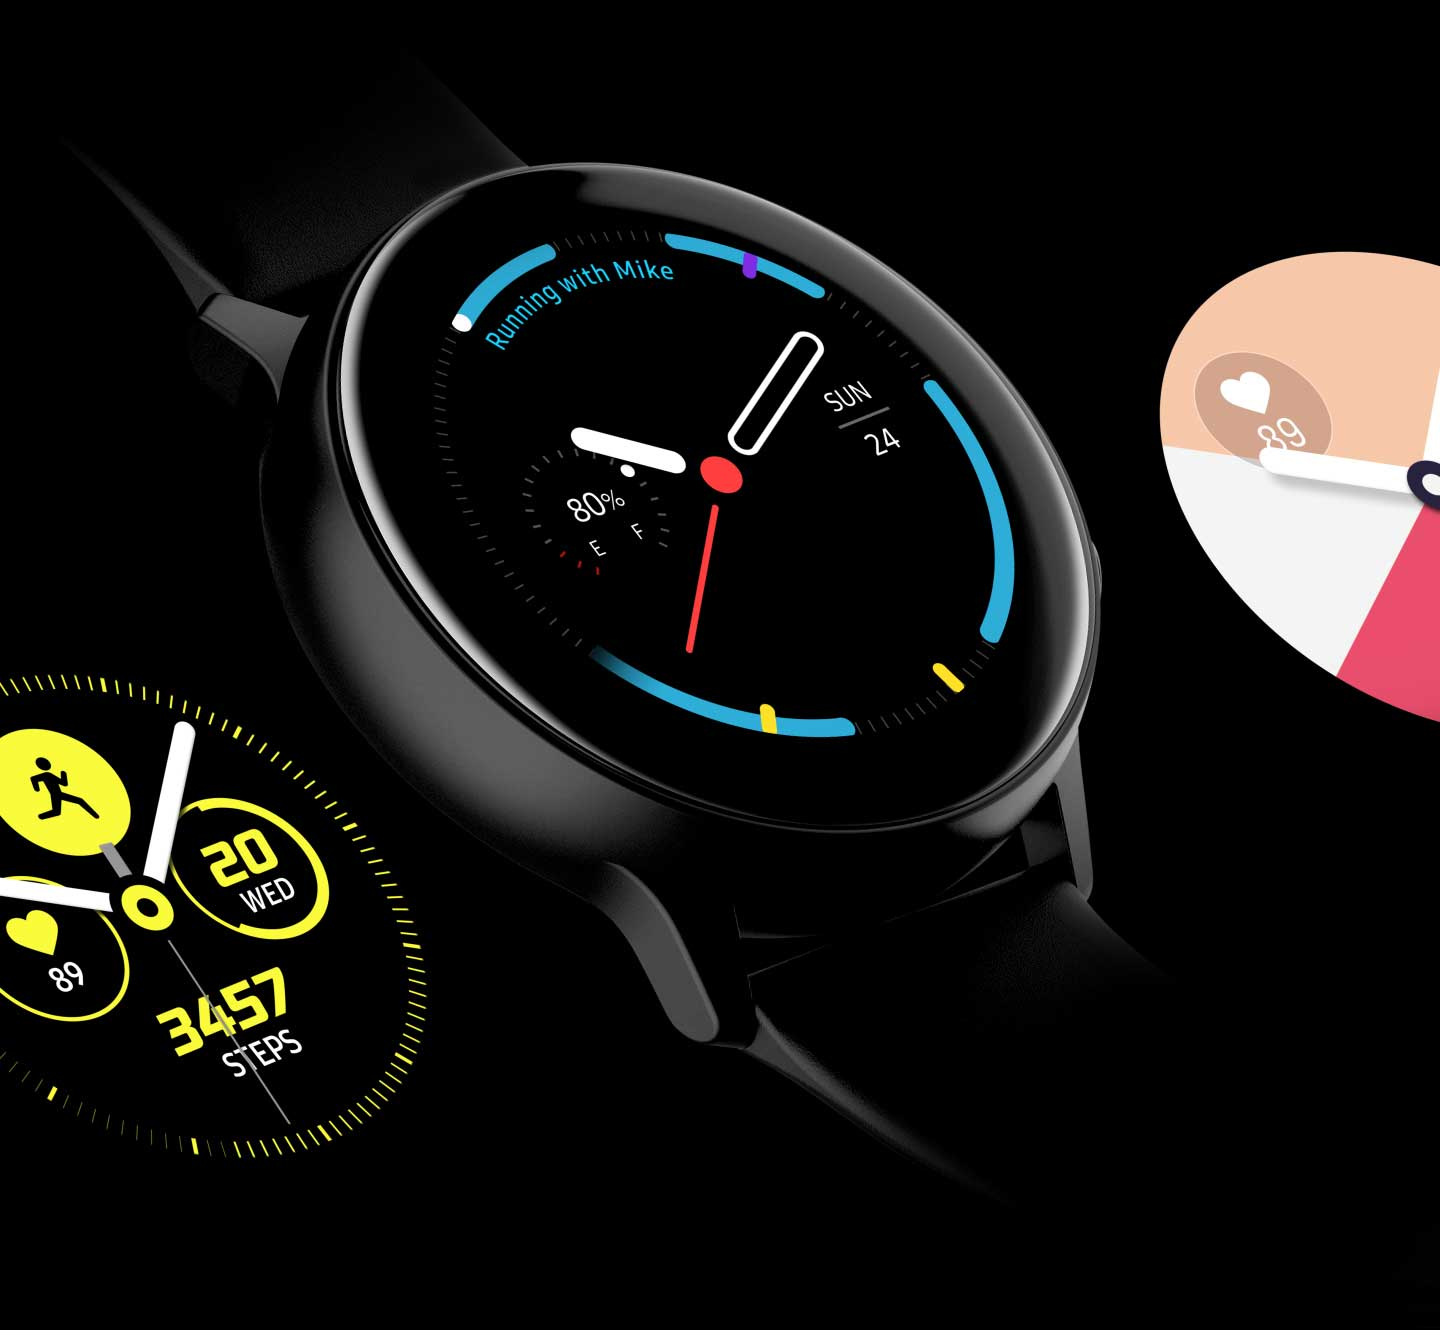 Four different designs of watch faces are exposed on the screen in The Galaxy Watch Active one by one. - face4